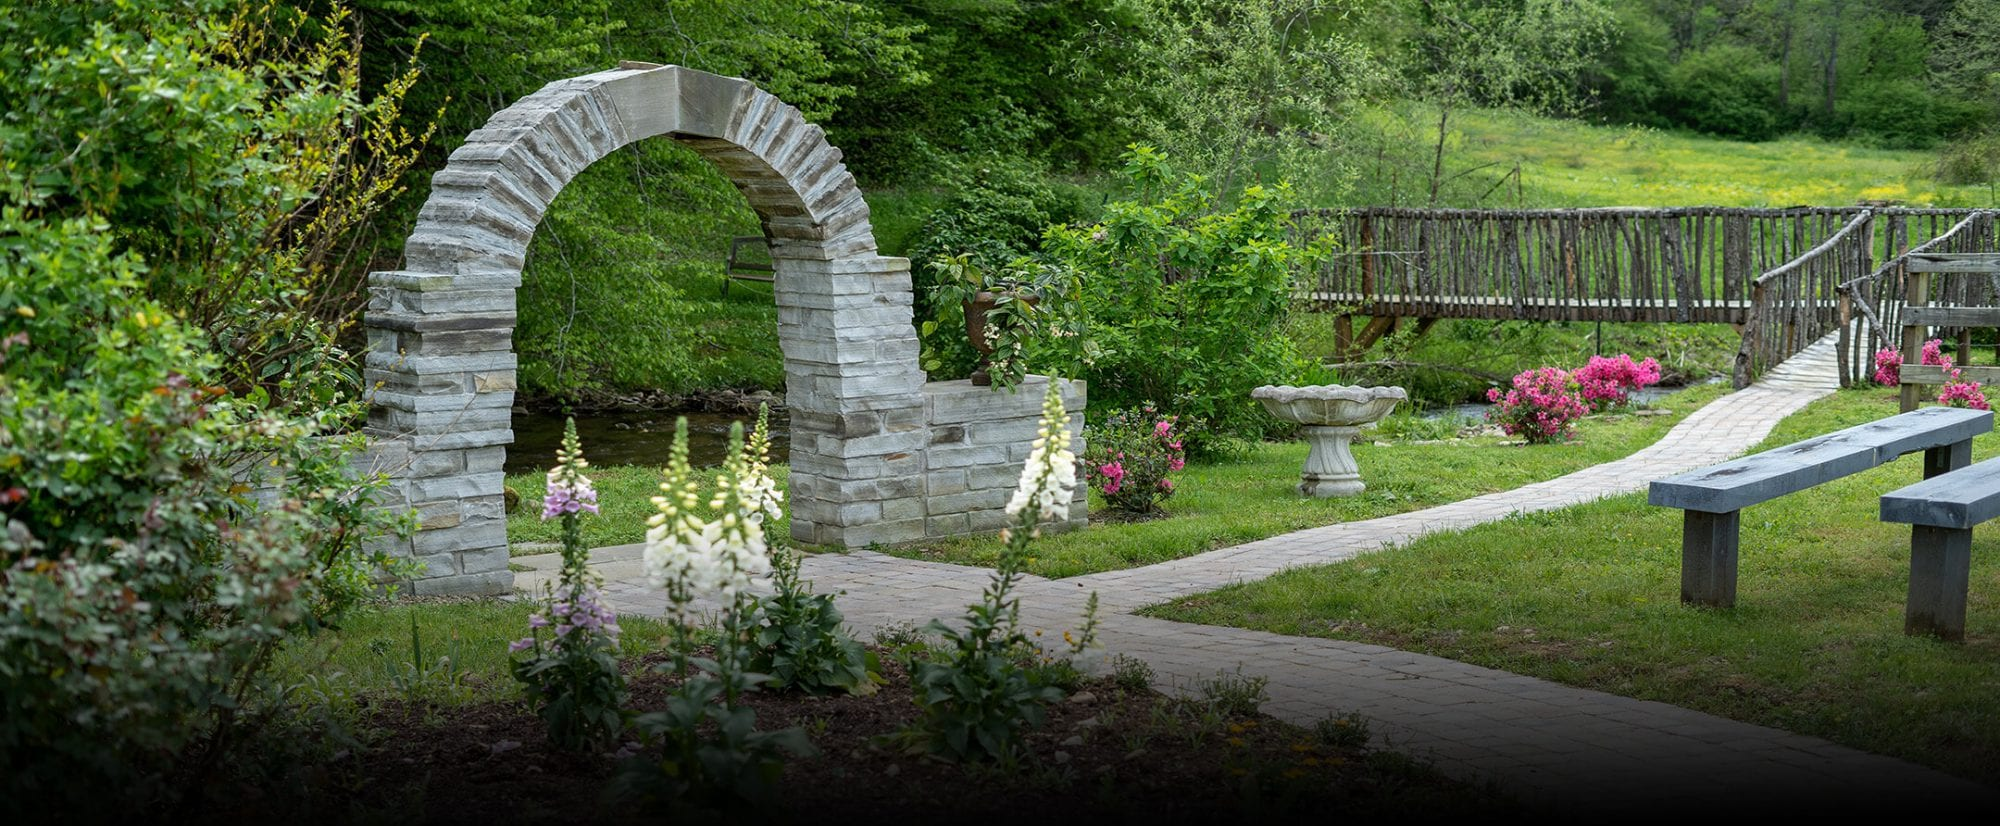 The Granite Stone Wedding Arch wedding ceremony site in Pigeon Forge, TN